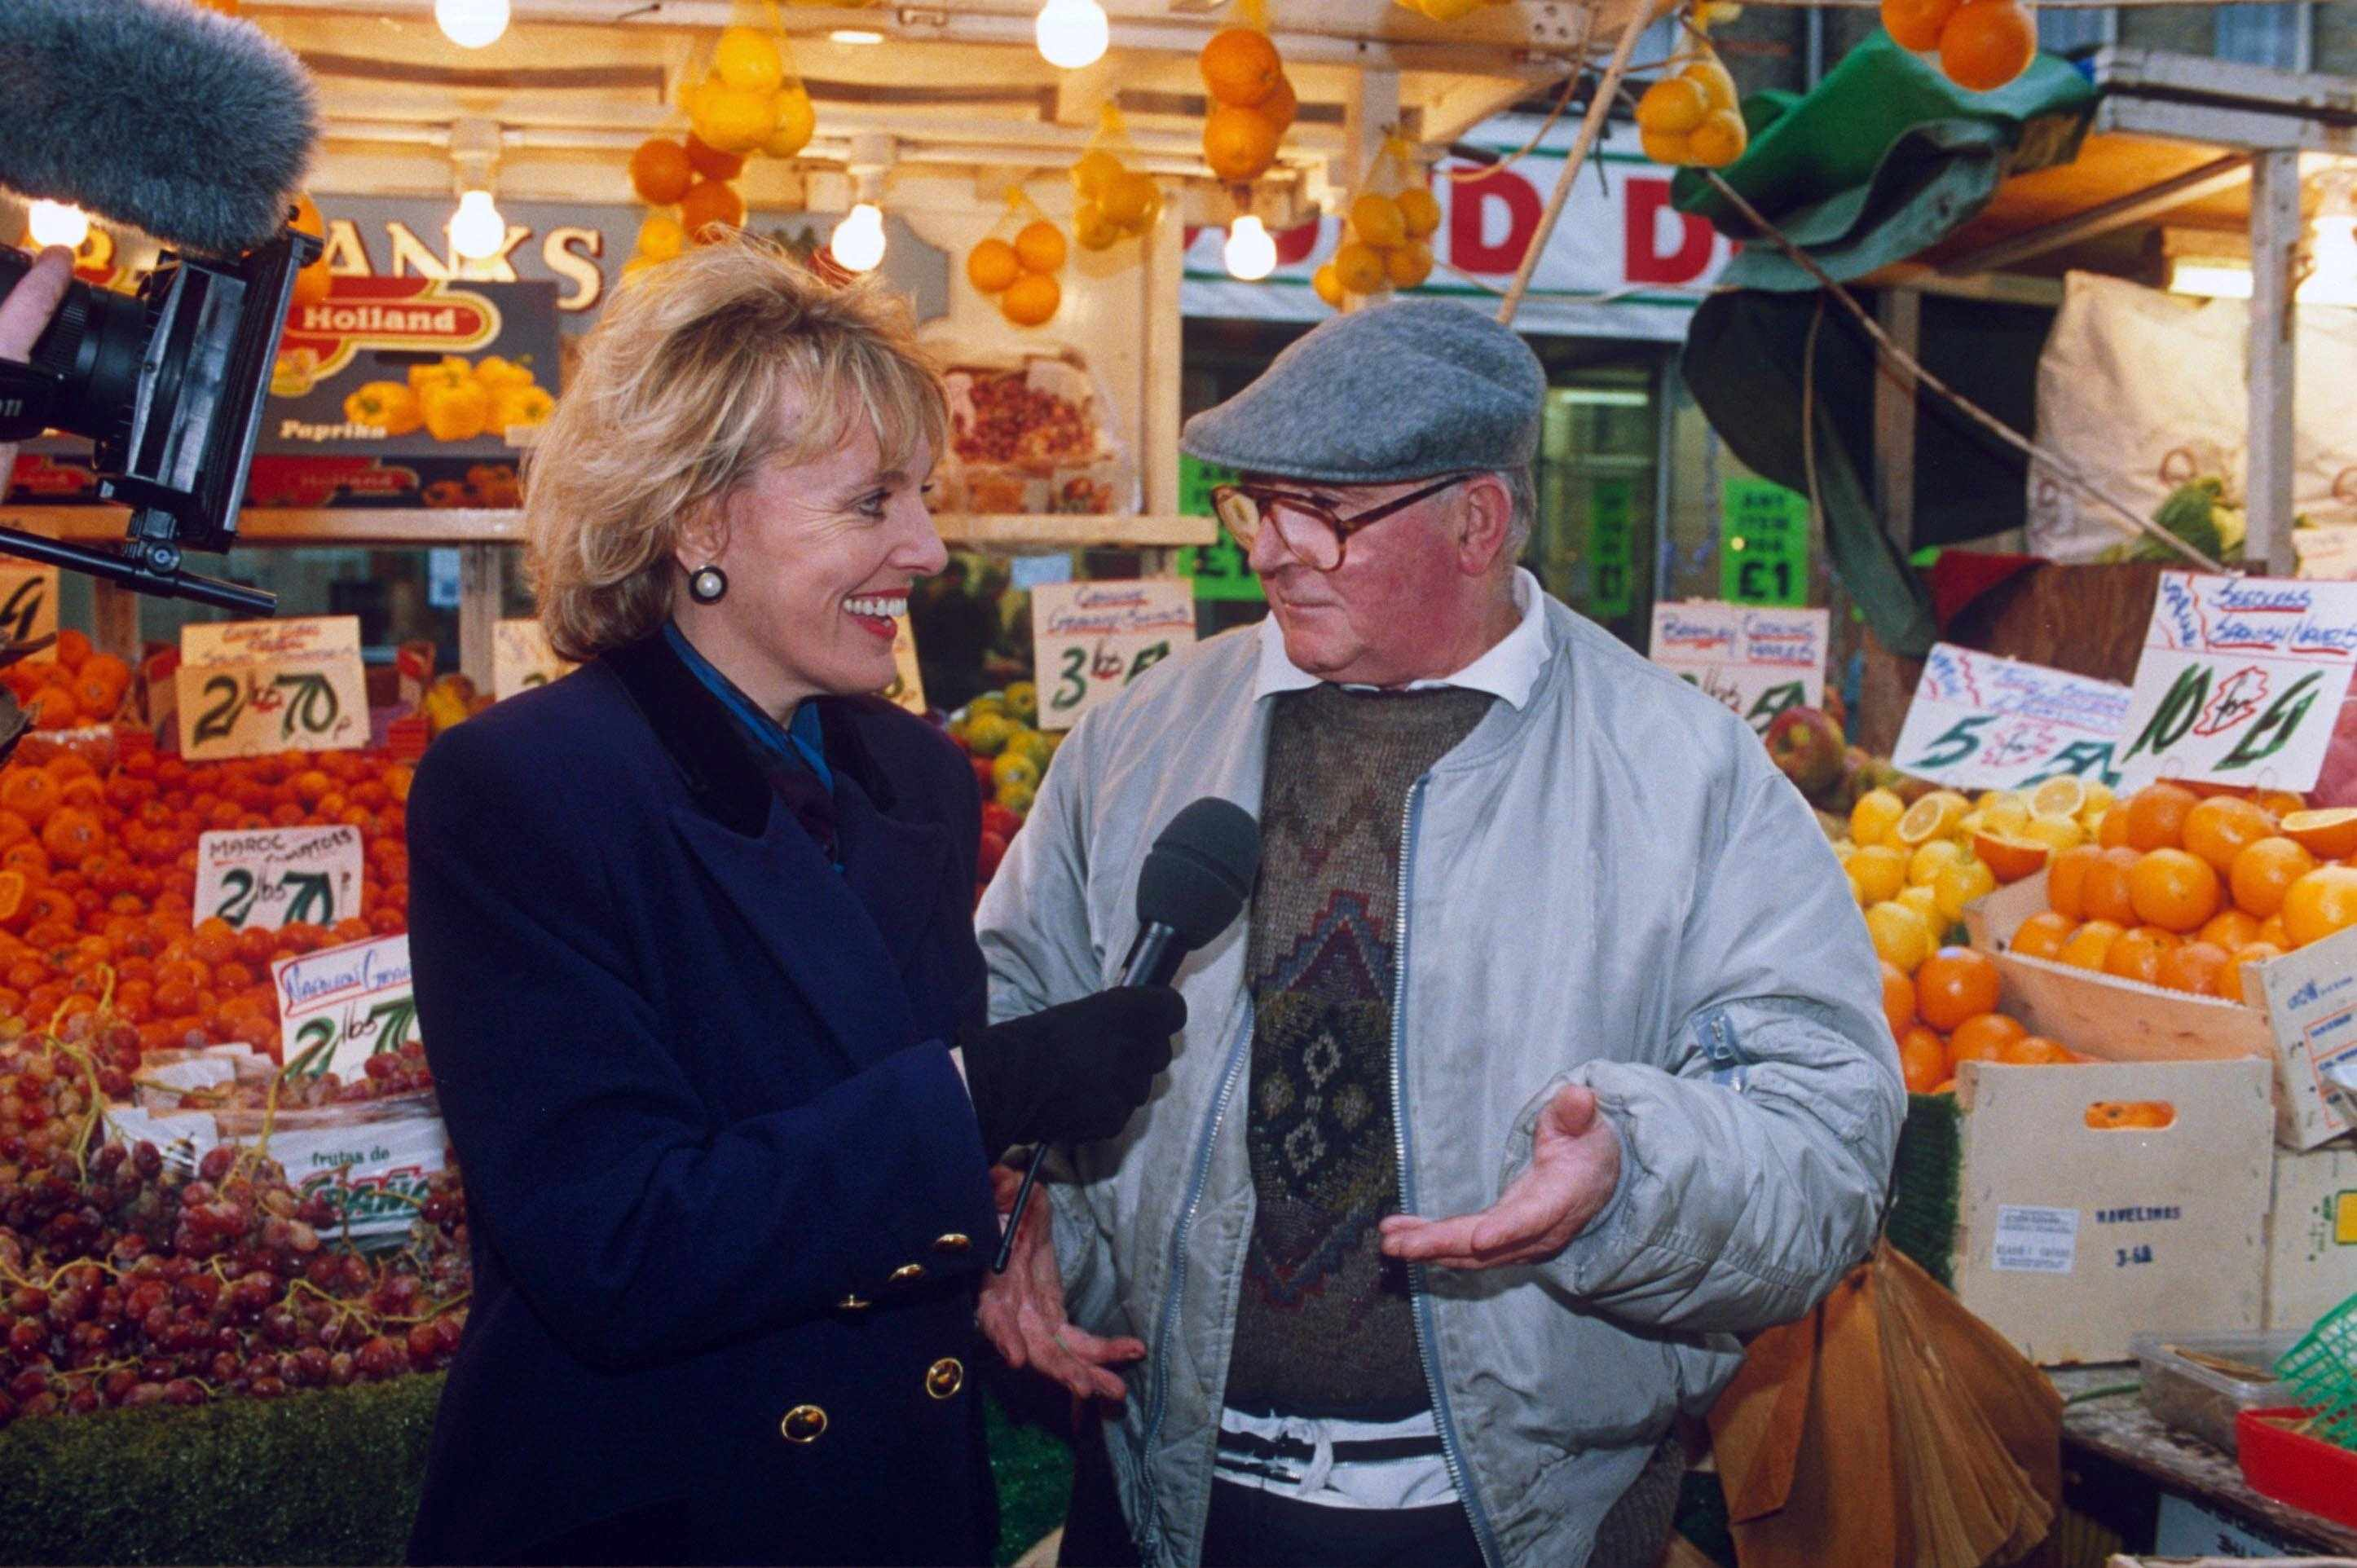 Tv Personality Esther Rantzen Interviewing With 25000Th Interviewee On Tv Series '' That'S Life '', Esther Rantzen In Greengrocers (Photo by Brian Rasic/Getty Images)